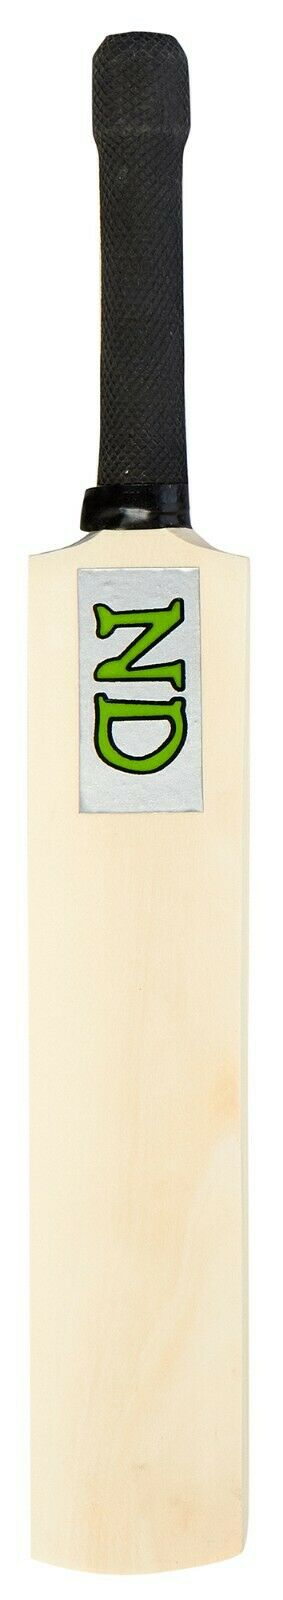 ND Signature Bat Mini Cricket Bat Miniature Autograph Bat 15